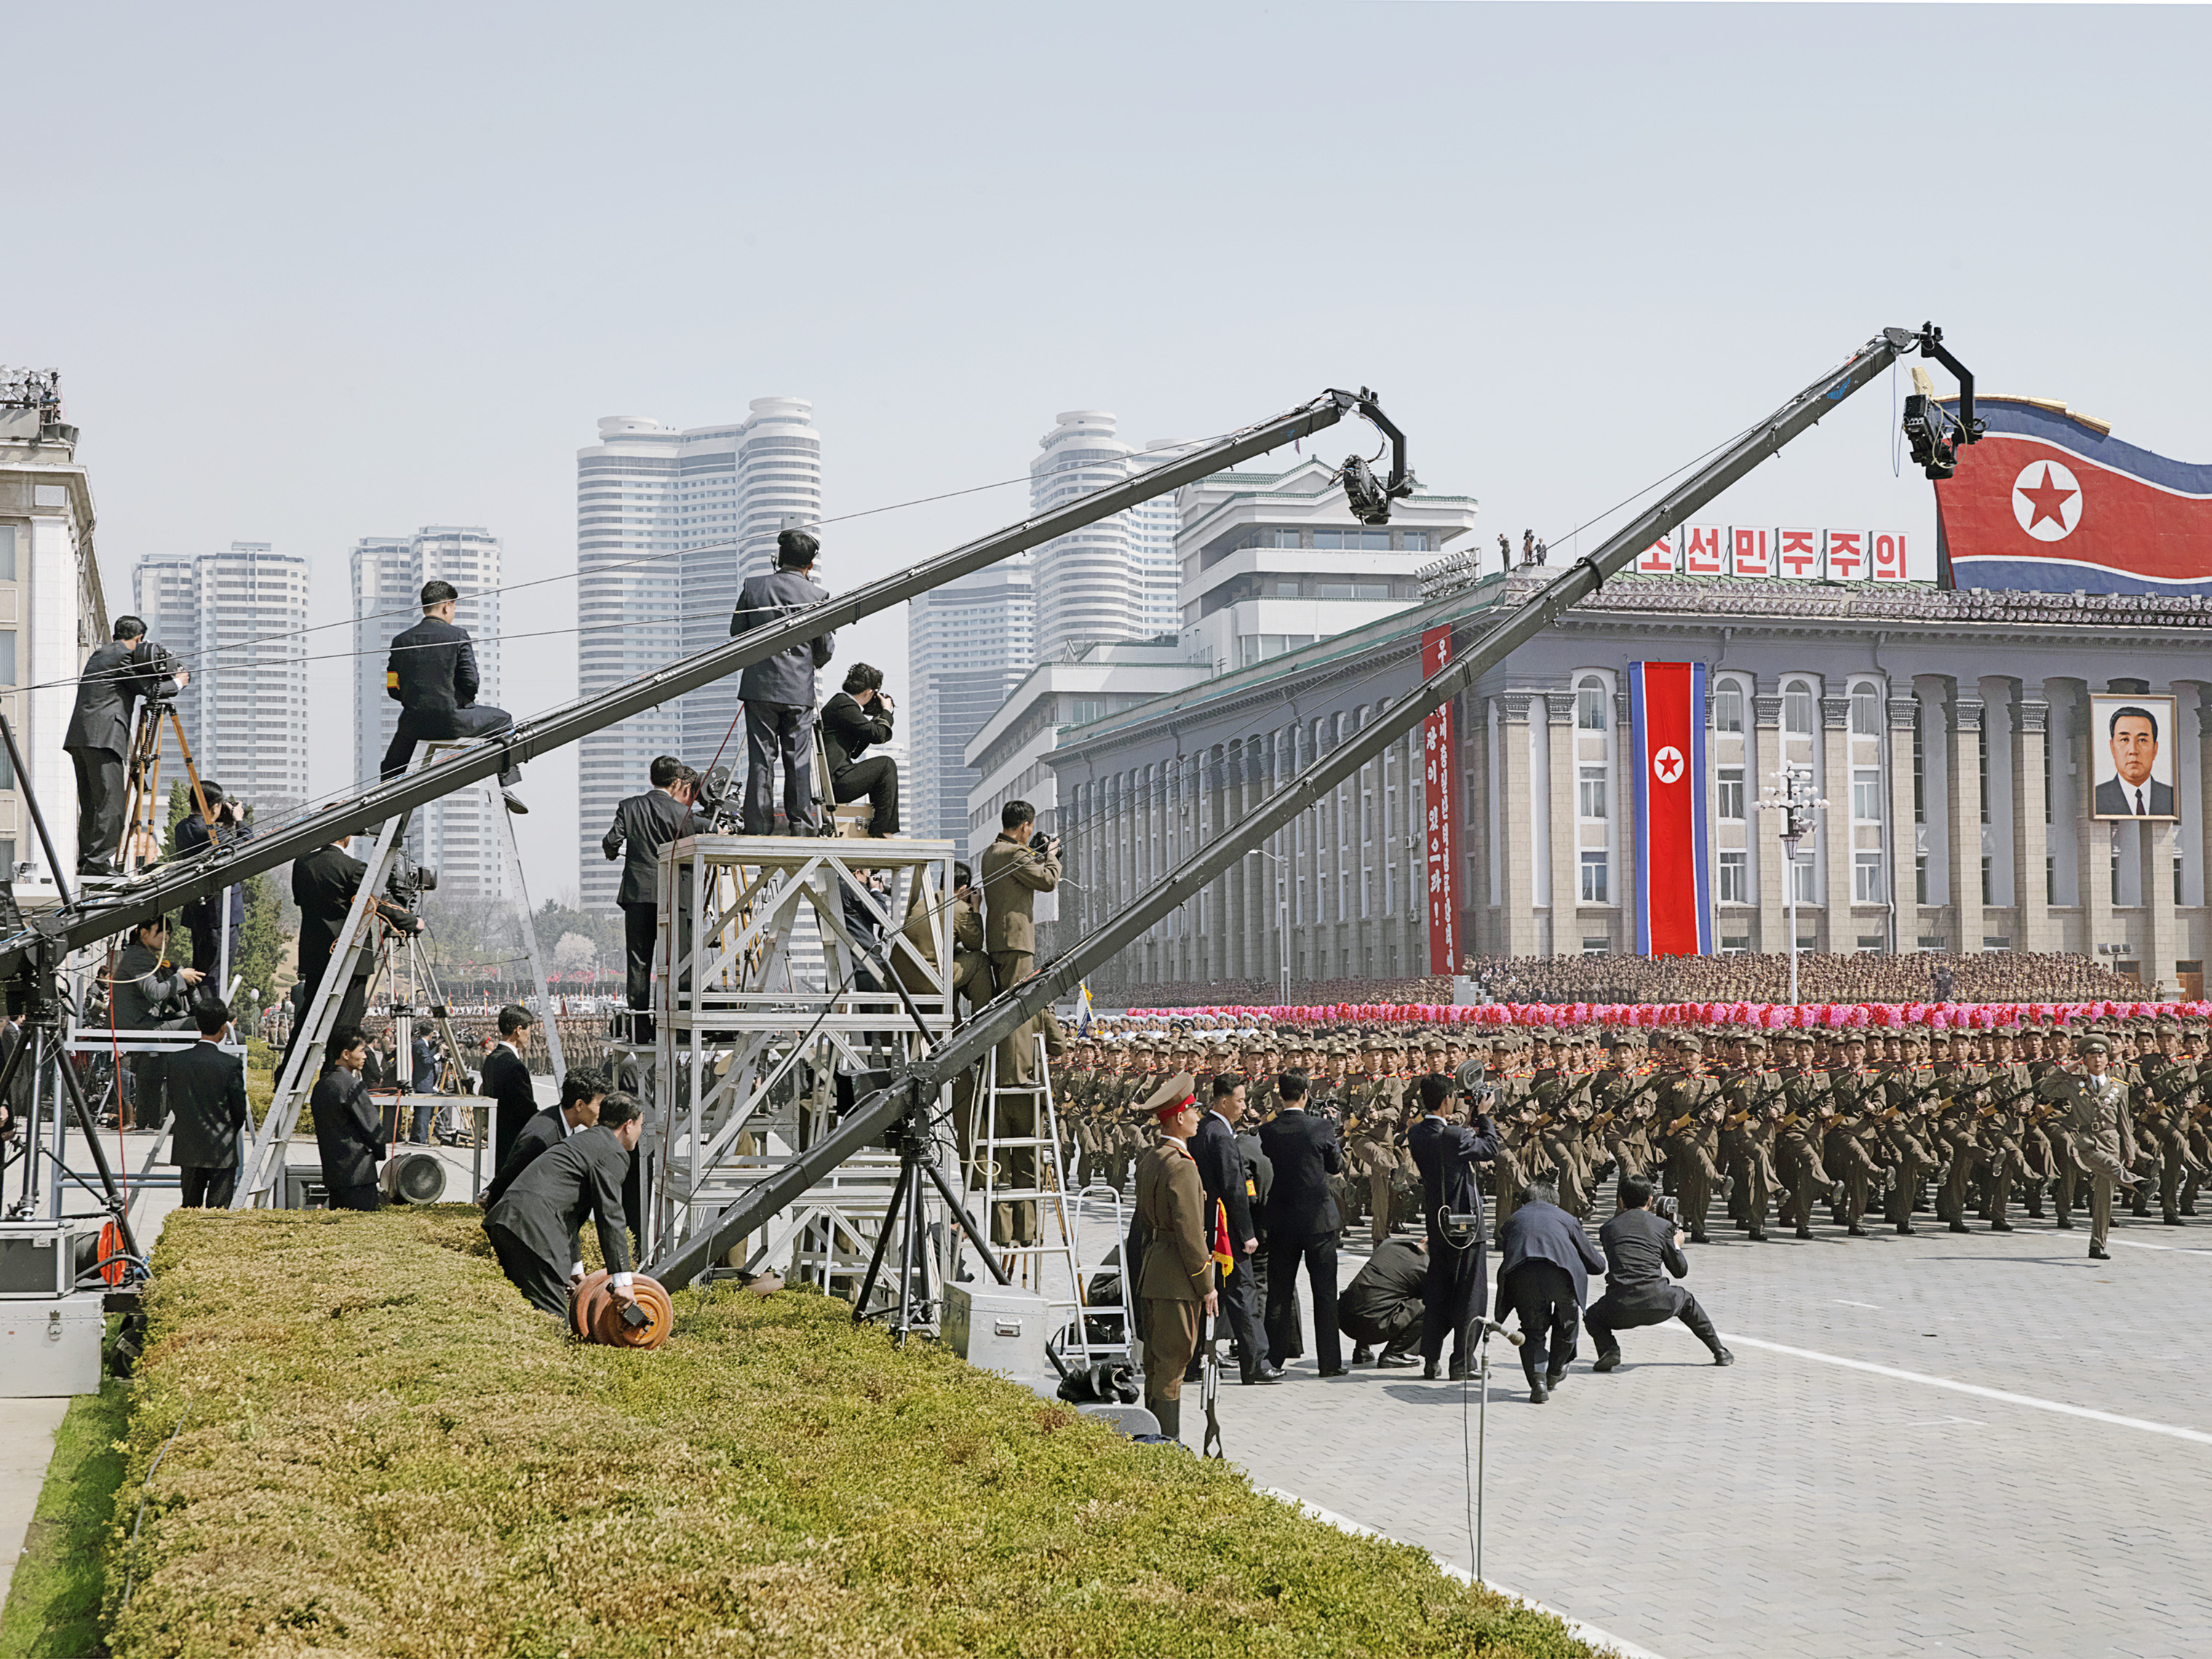 A view of Kim Il Sung Square during the parade celebrating the century since the birth of the  Great Leader  in April 2012.